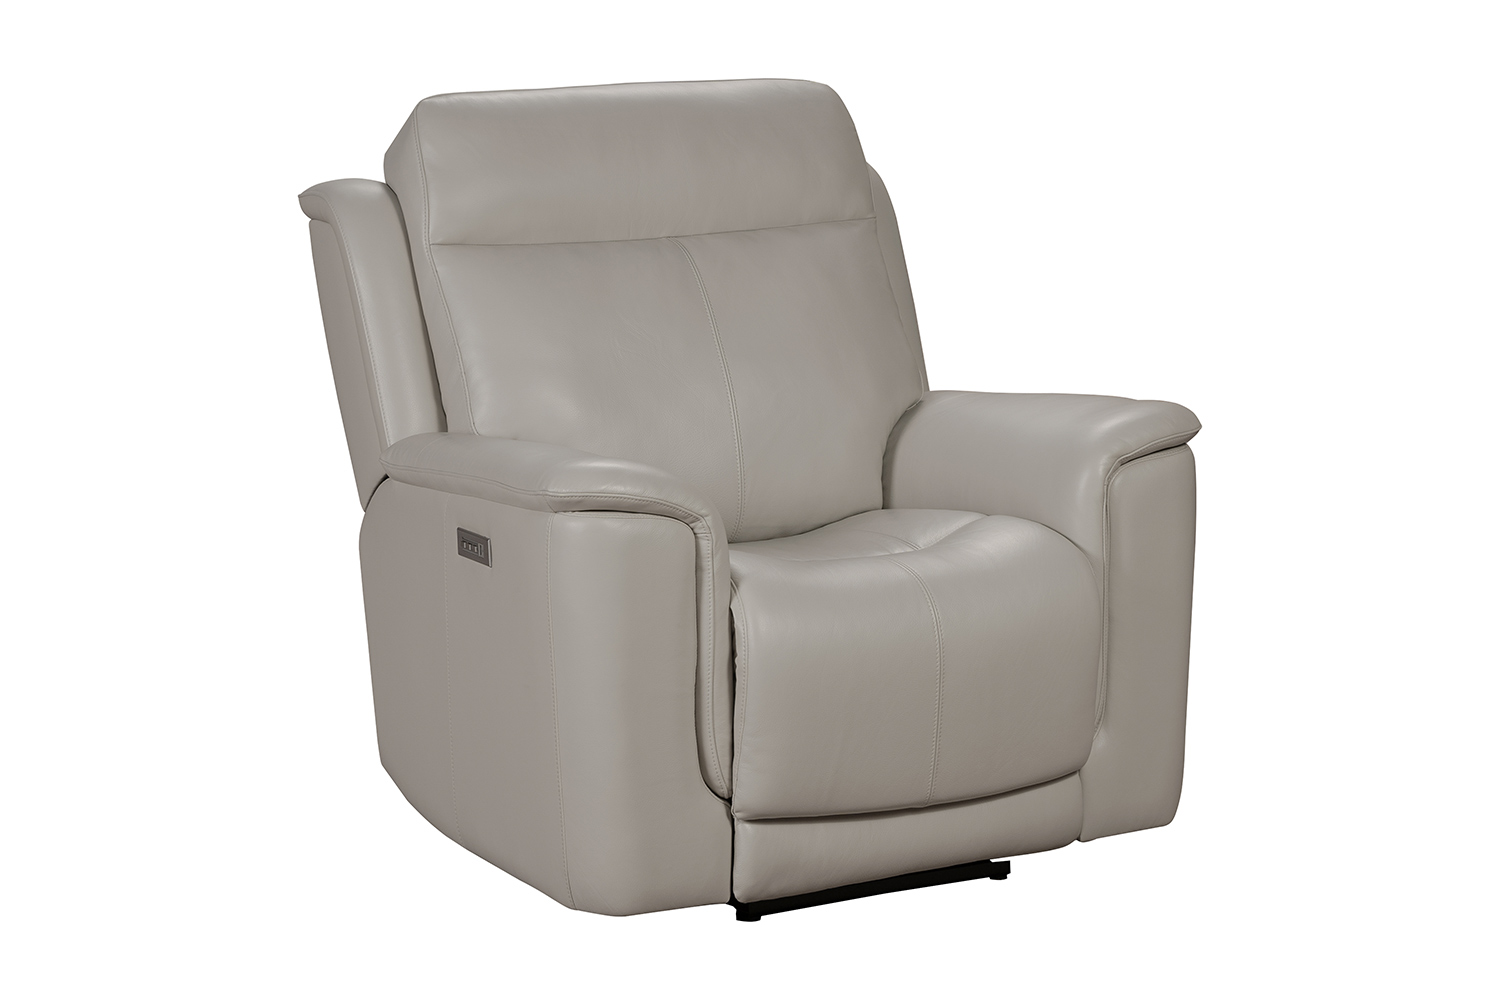 Barcalounger Burbank Power Recliner Chair with Power Head Rest and Lumbar - Laurel Cream/Leather match